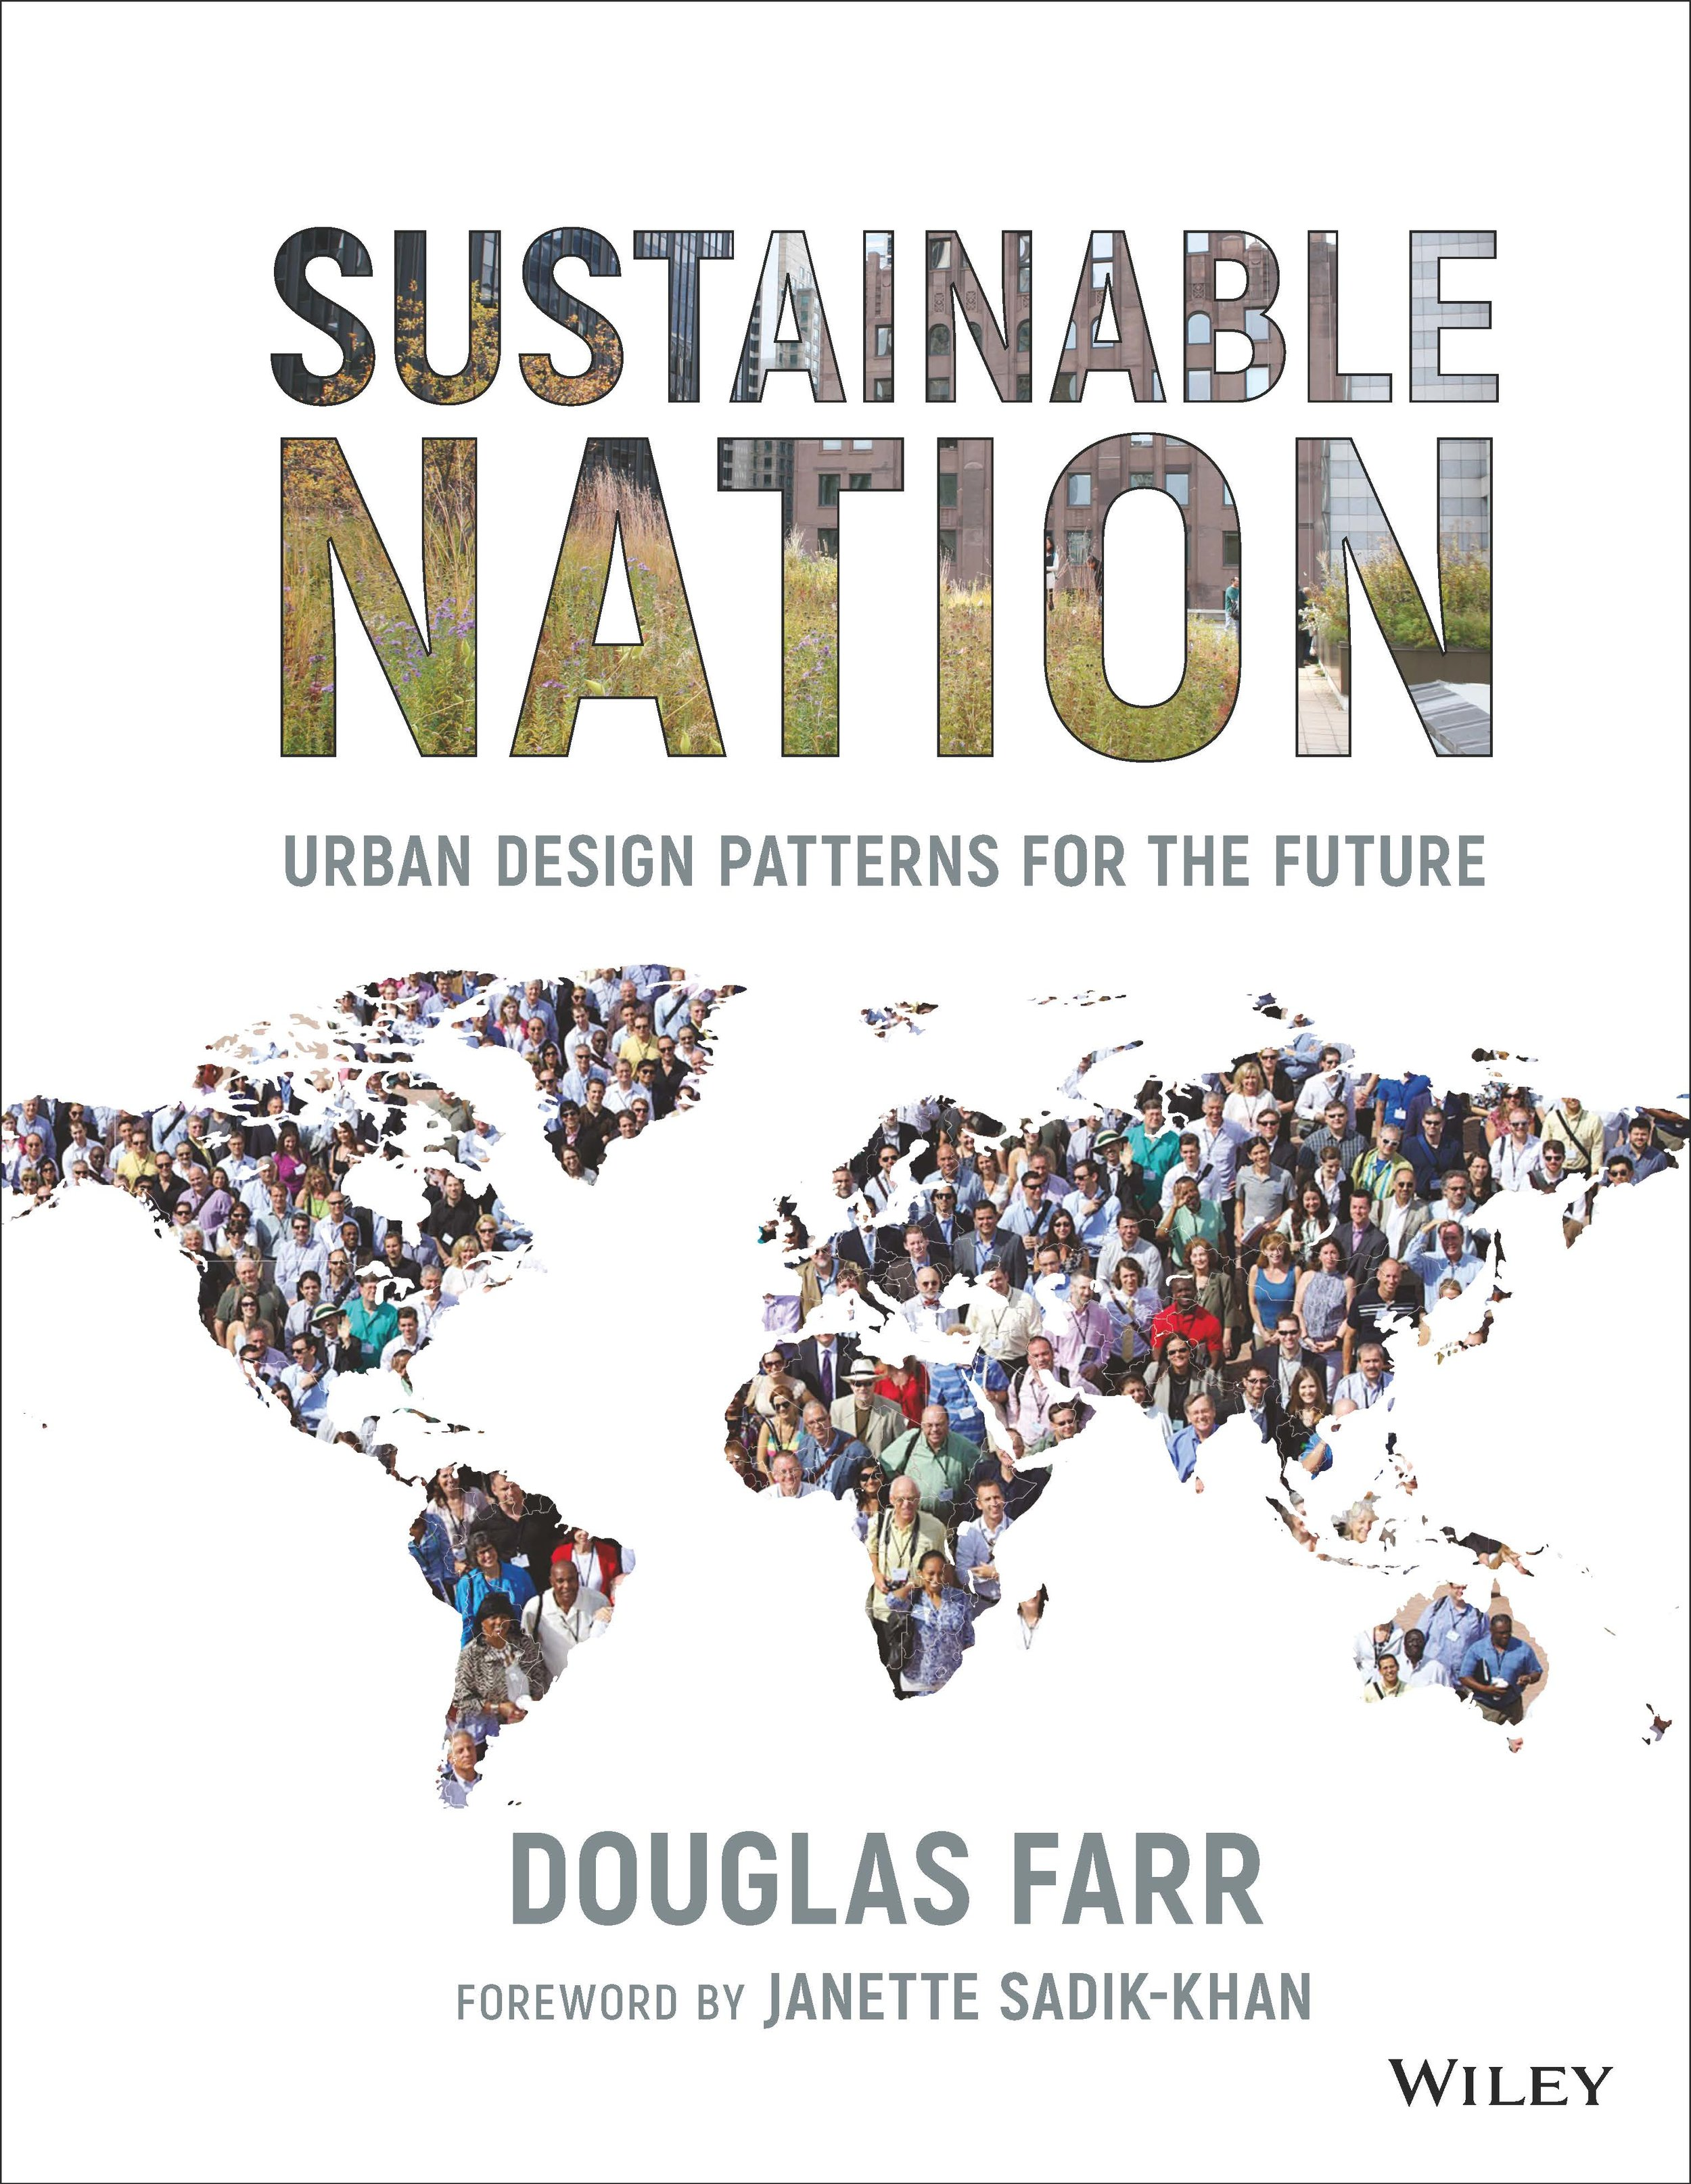 SUSTAINABLE NATION - Doug Farr's second book, Sustainable Nation: Urban Design Patterns for the Future, poses one big question: how can we make the world we want in the least possible time? The answer touches on a good many things: our brain's wiring, civilization's long arc of progress, the unique and urgent challenges we face today, how long change normally takes, and ways to speed it up. The storytelling blends prose, graphics, and imagery. Not surprisingly, it is all framed by time: dozens of timelines track society's progress against 25-year generations, four day-in-the-life vignettes introduce us to 'local actors' two generations into the future, and urban design patterns of community design and culture for passionate followers to enact over time. For individuals who are passionate about making the world we want, this book is for you!Learn more about Sustainable Nation here. Purchase the book here.